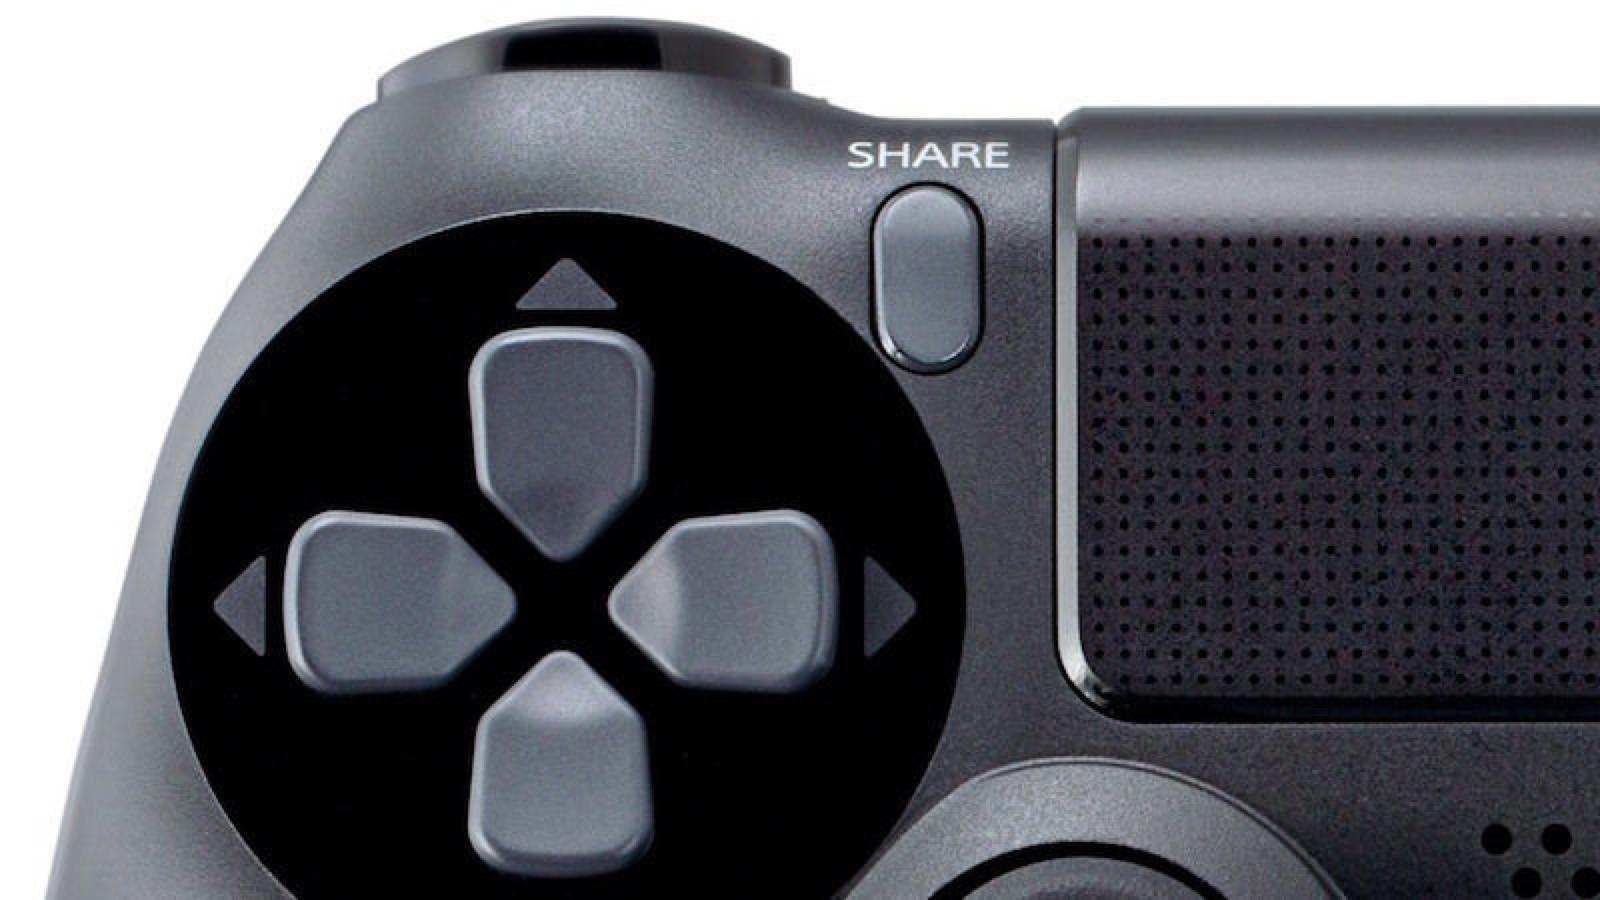 Use this simple trick to share PS4 games with friends